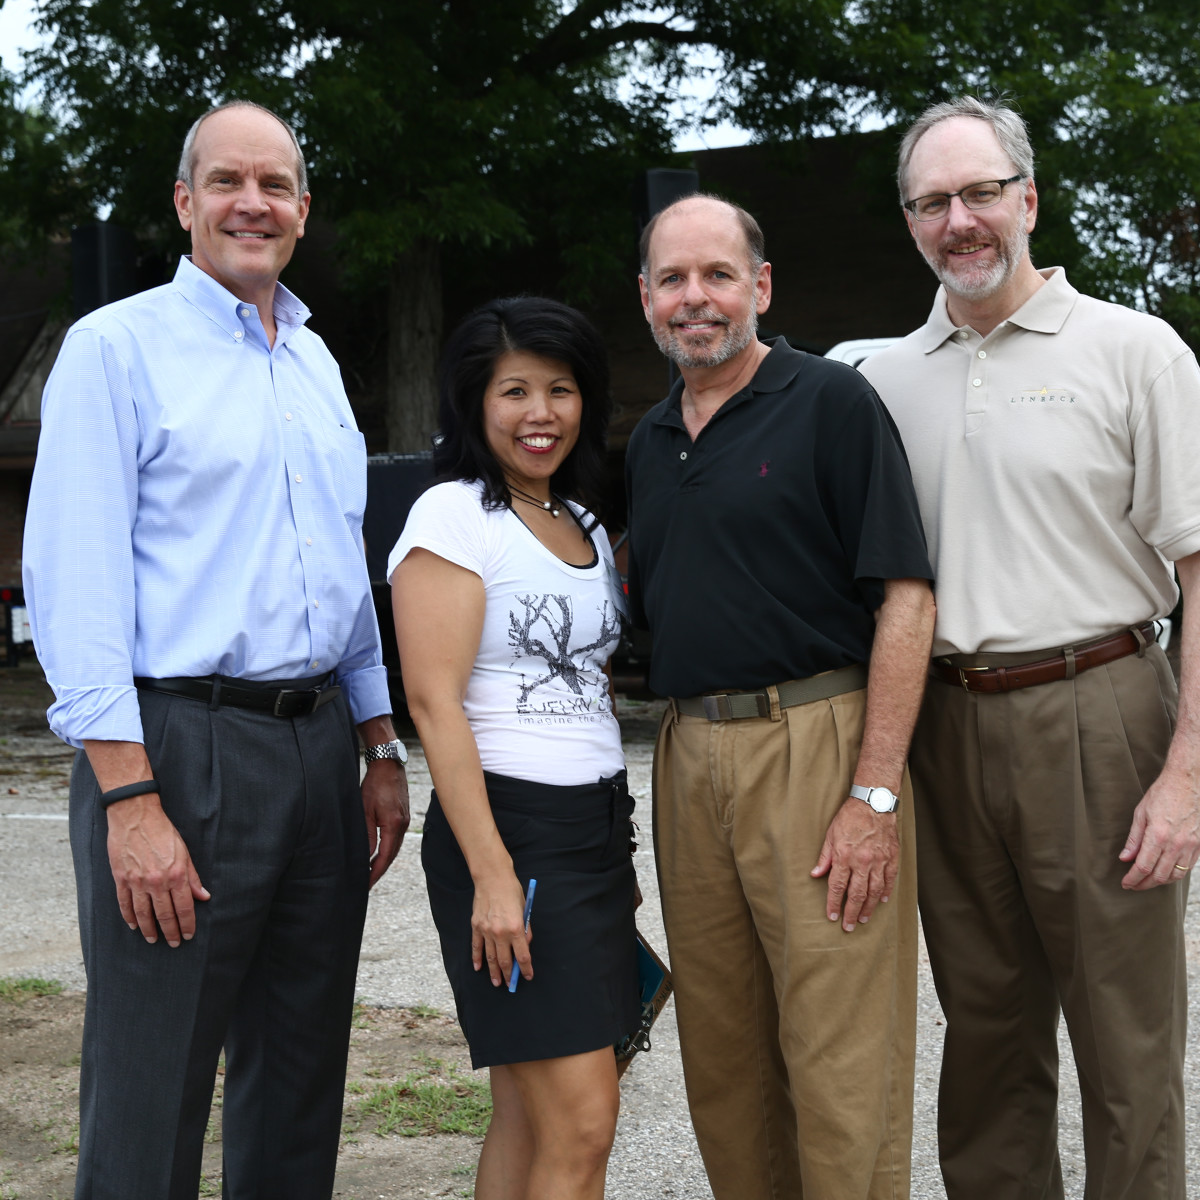 News, Shelby, Evelyn's Park groundbreaking, June 2015, David Stueckler, Patricia Ritter King, John Gabriel,Tom Butler